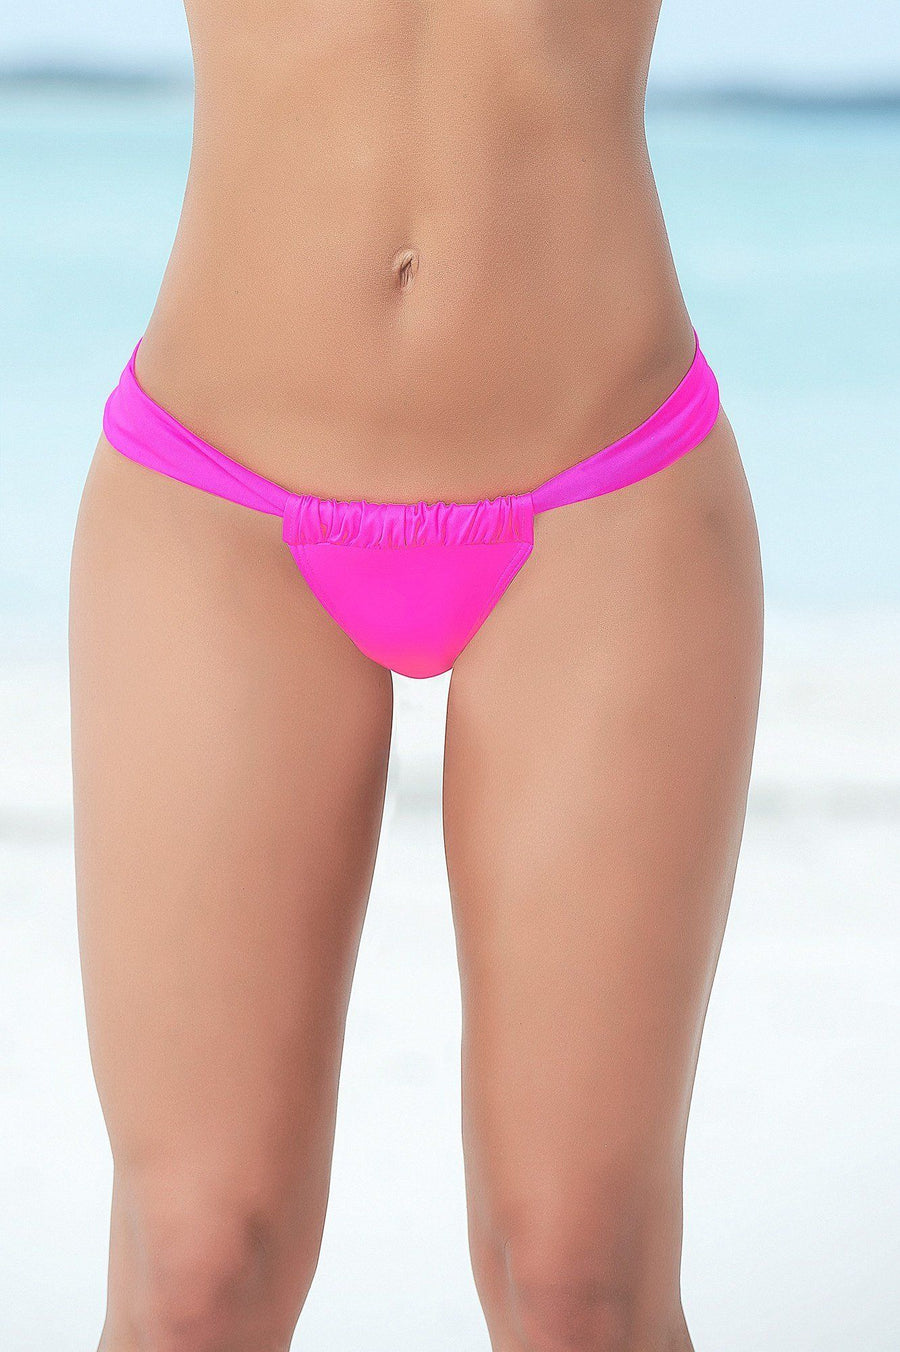 Hot Pink Sunny Days Thong - PIRATA COUTURE